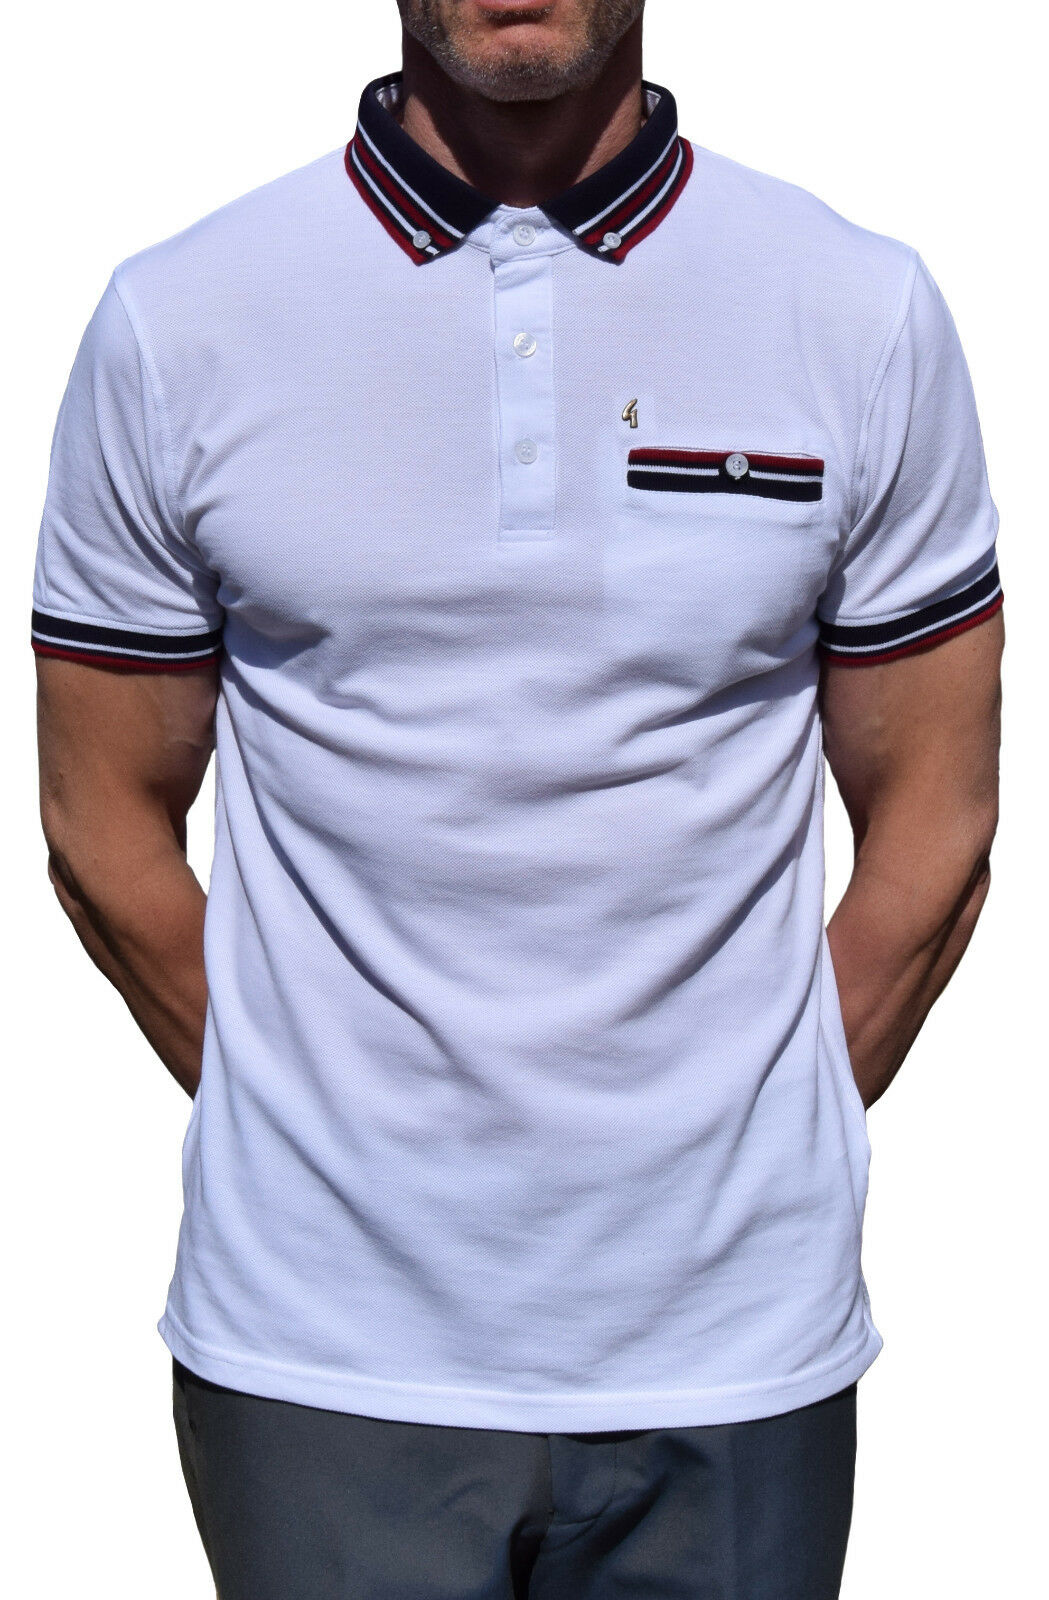 GABICCI VINTAGE Weiß STRIPED PIQUE POLO SHIRT MOD CLOTHING NORTHERN SOUL MODS